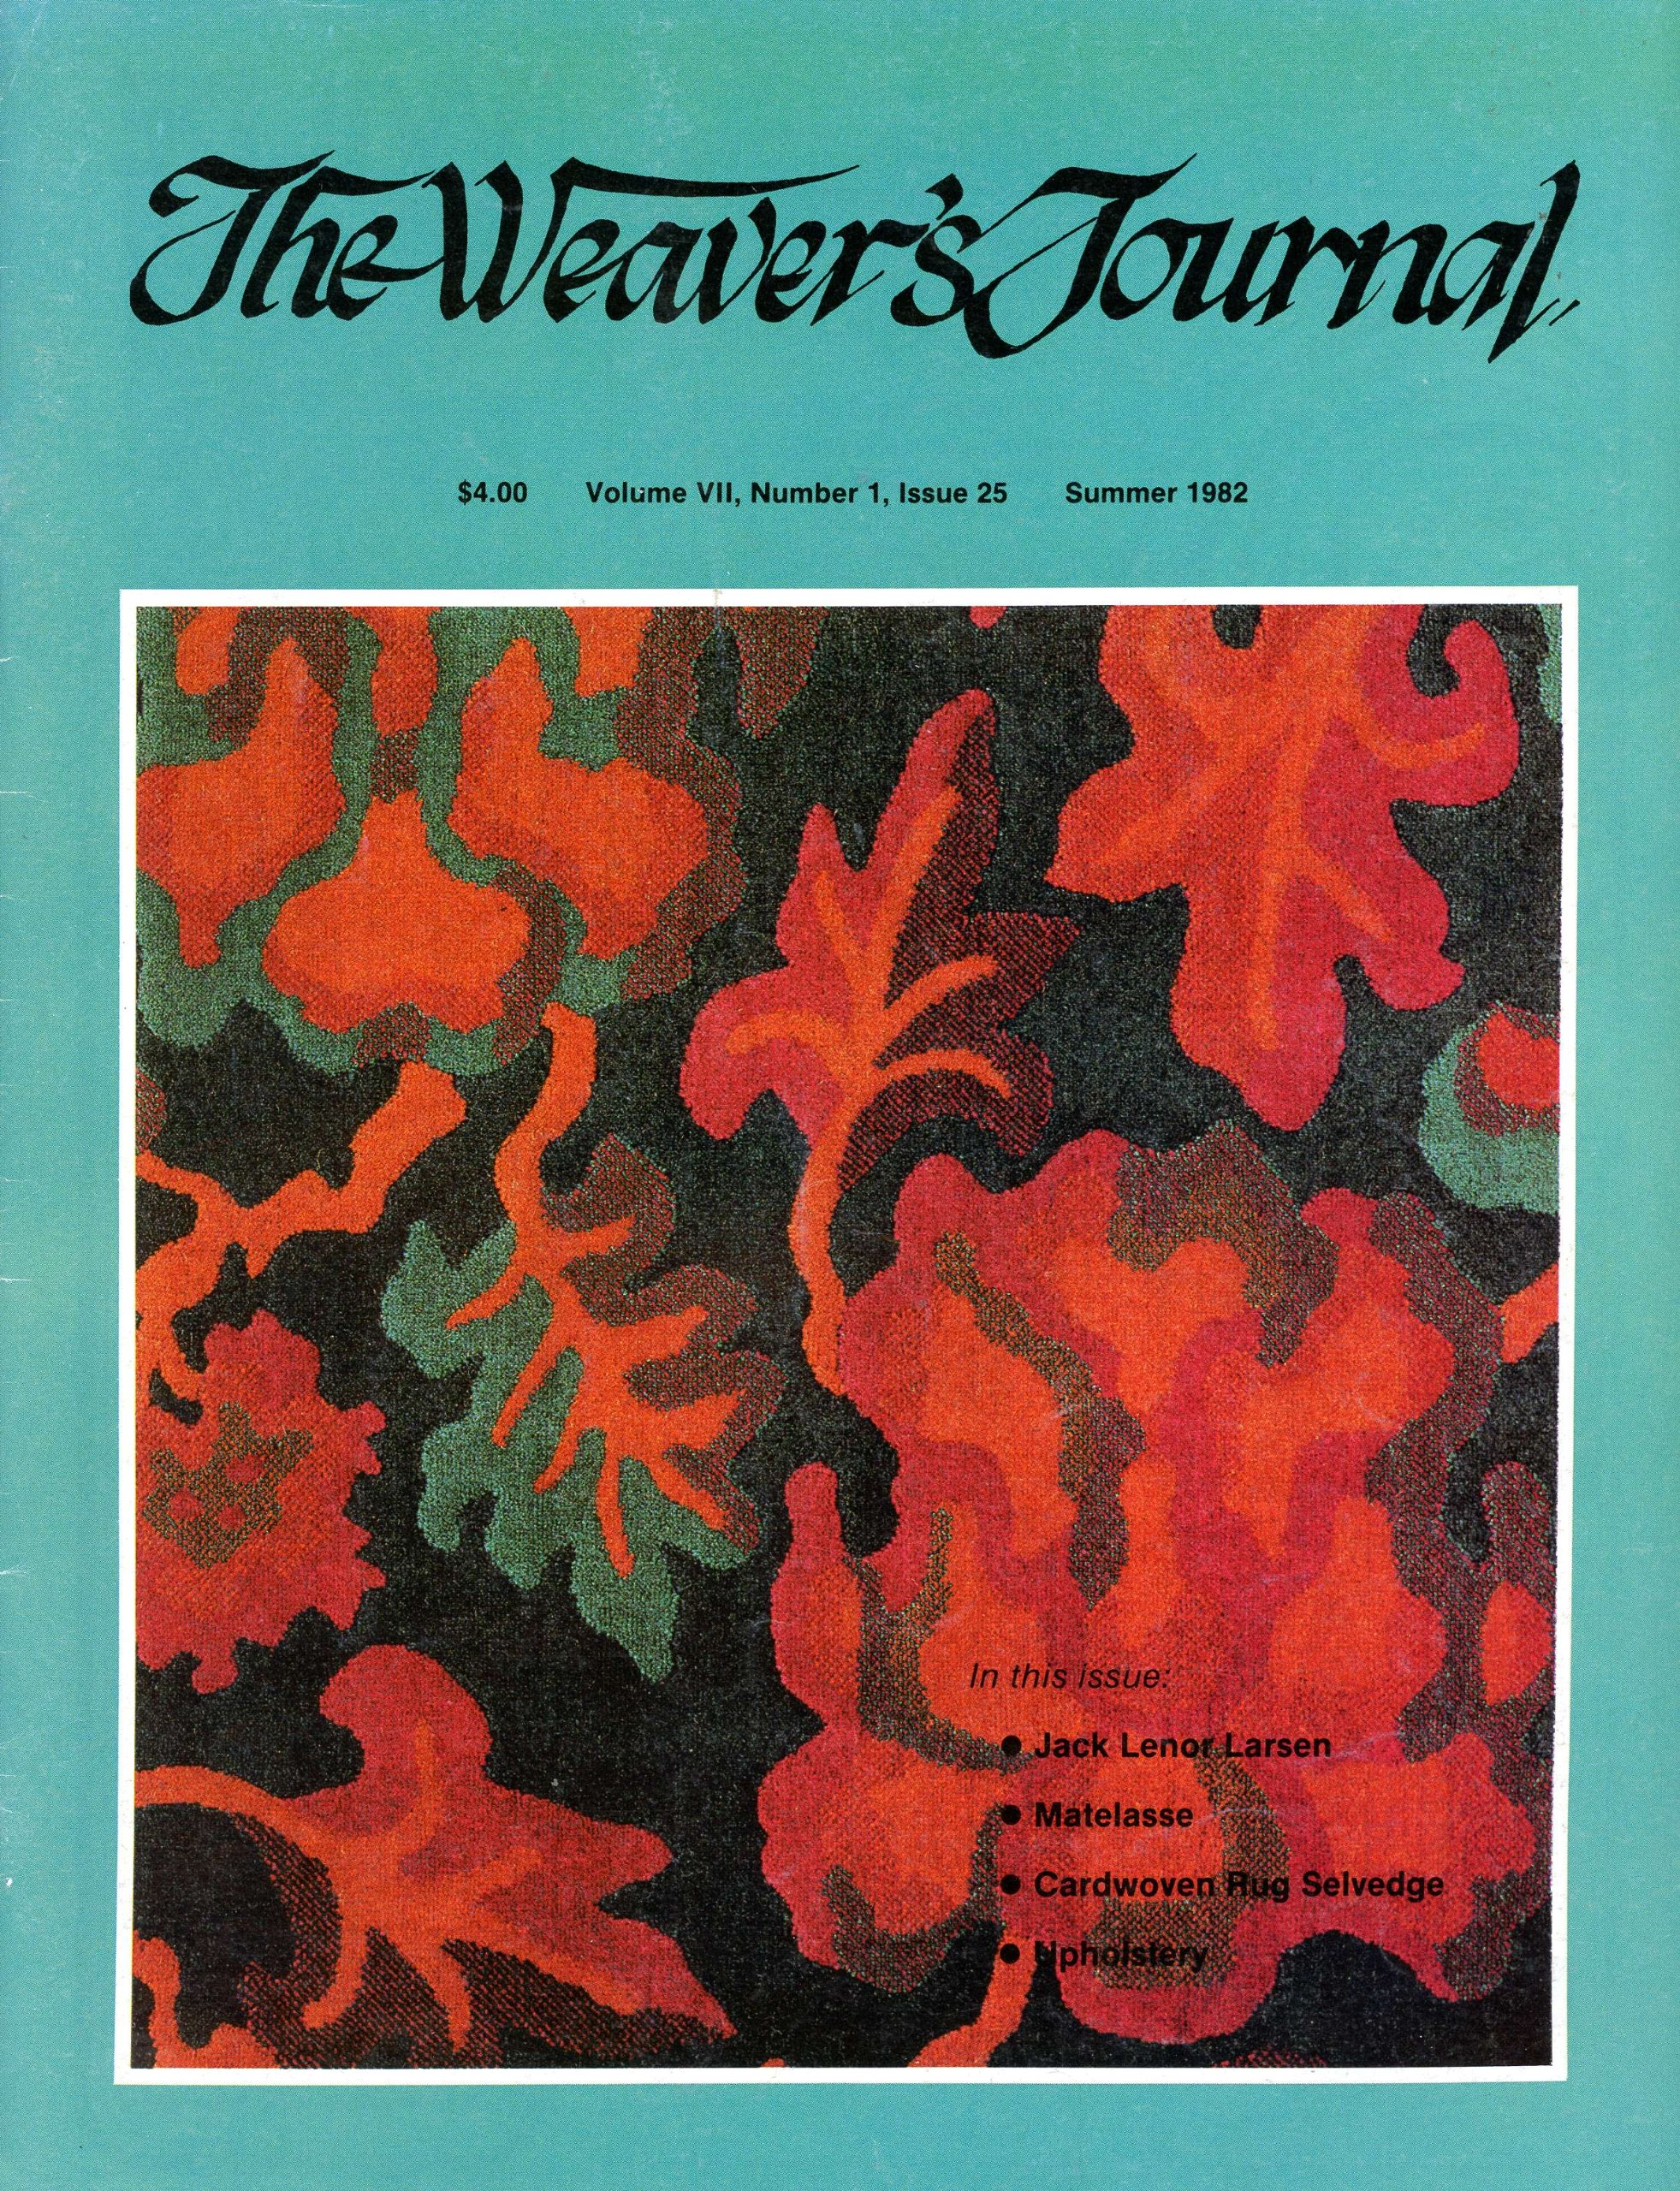 The Weaver's Journal : Interview with Jack Lenor Larsen; Wire Weaving; Woven Felted Boots; 4-shaft Twill Neck Scarf; Loom Controlled Quilted Fabrics; Simple Matelasse By the Pick-up Method; Matelasse Double Cloth Stiched to Form the Design (Vol. 7 No. 1, Summer 1982)